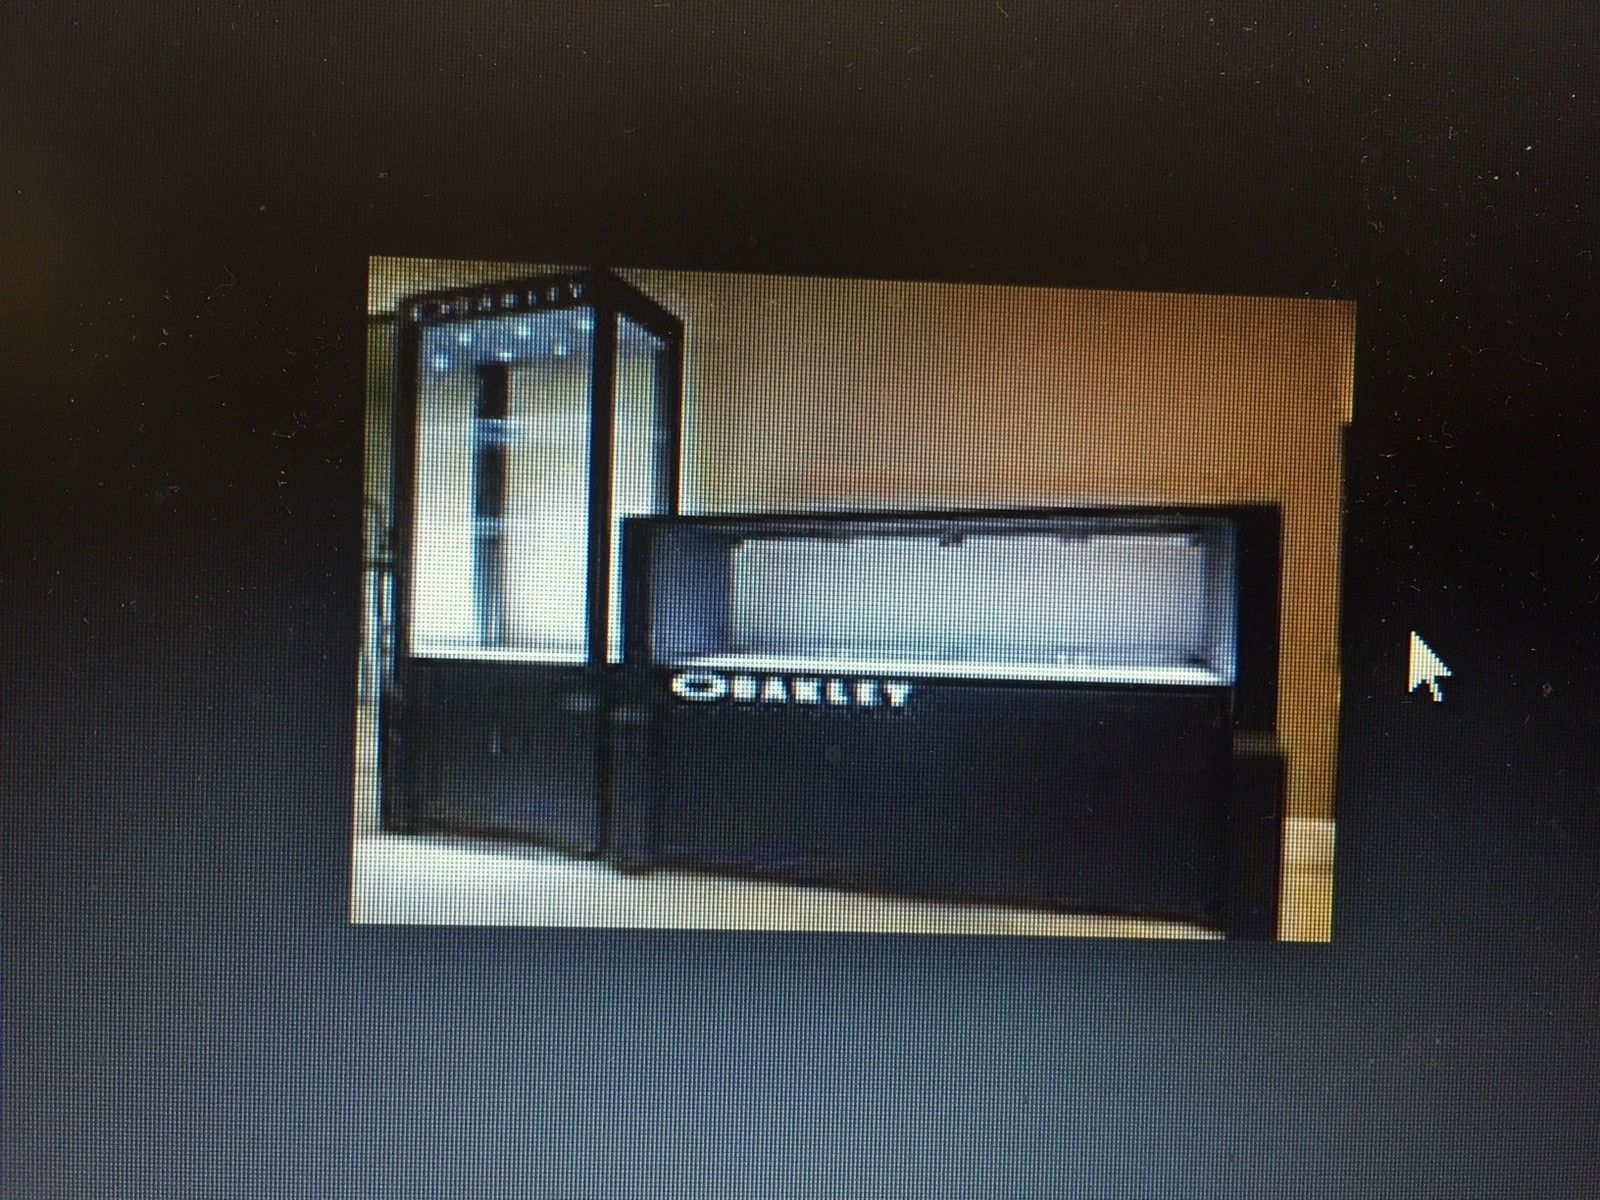 6ft wide black display case, not a tower - O display case.JPG